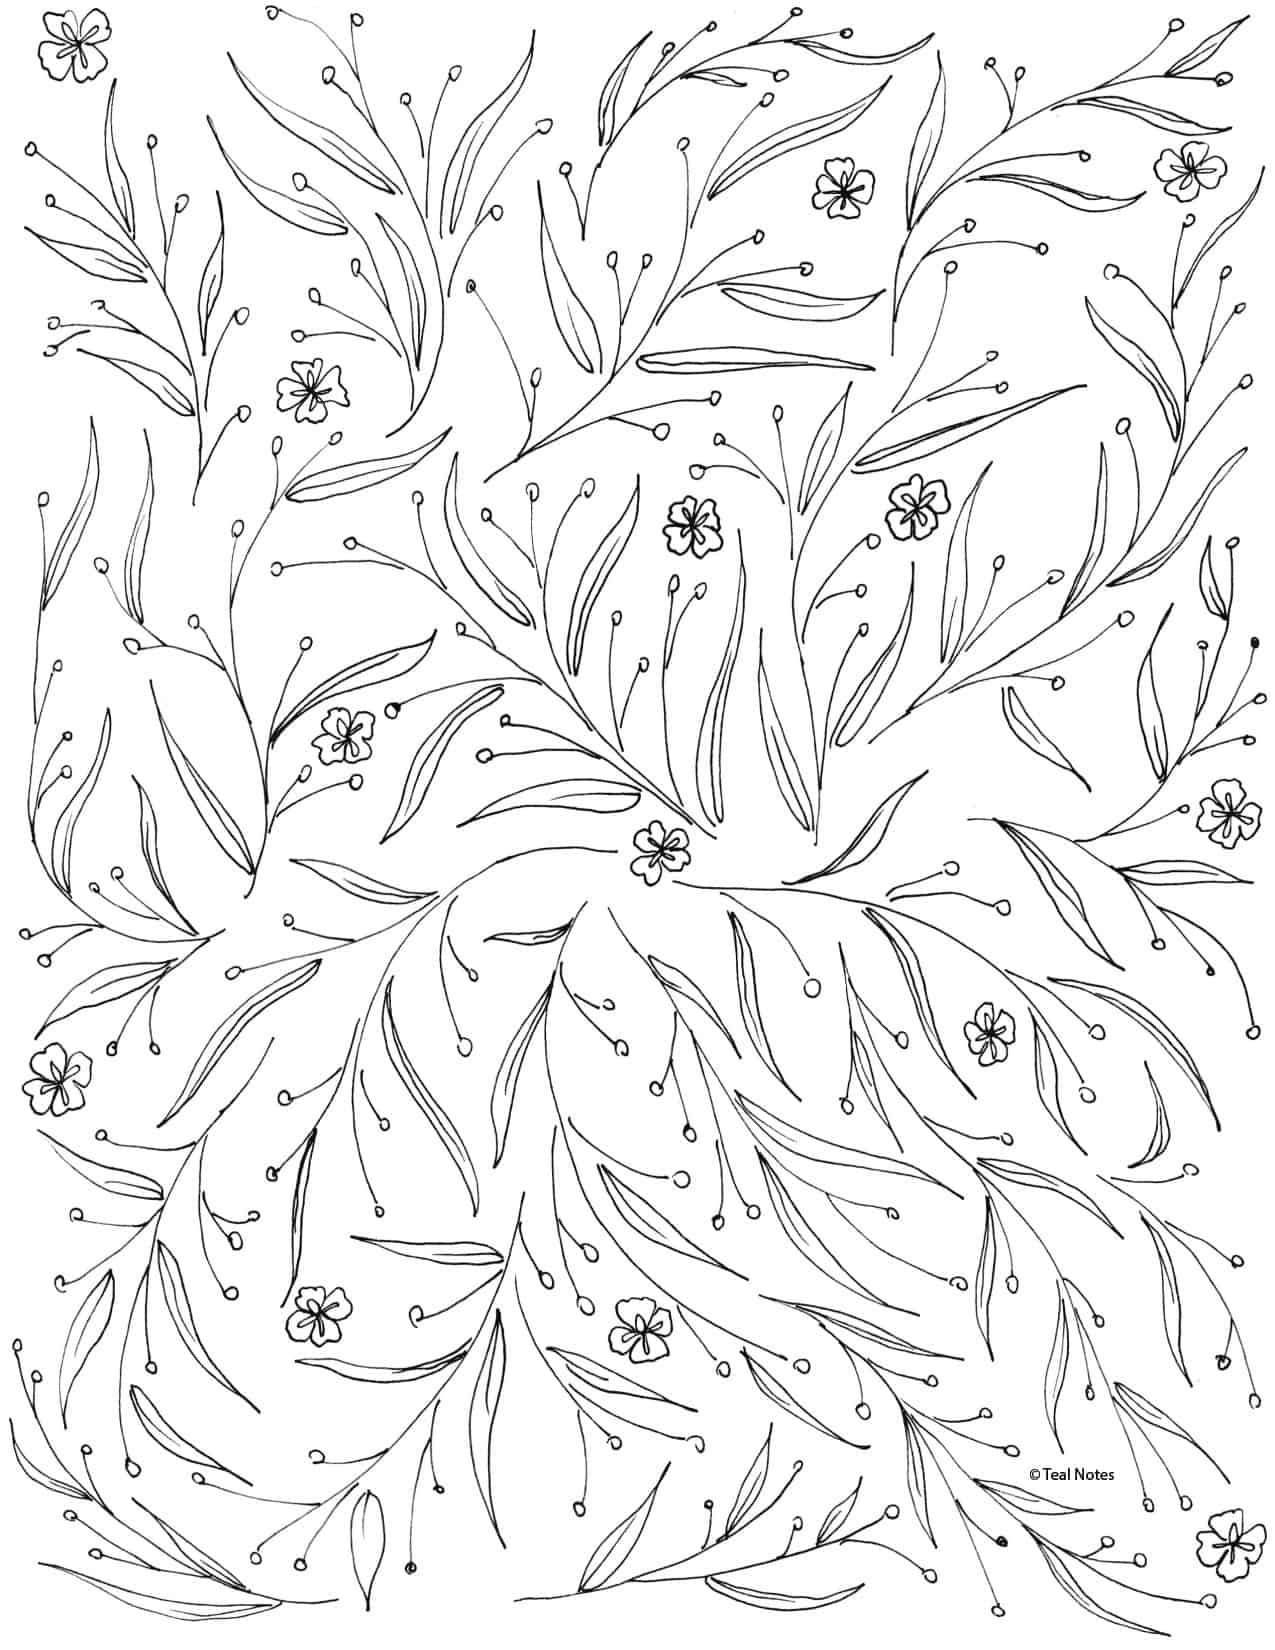 free coloring page to print and color